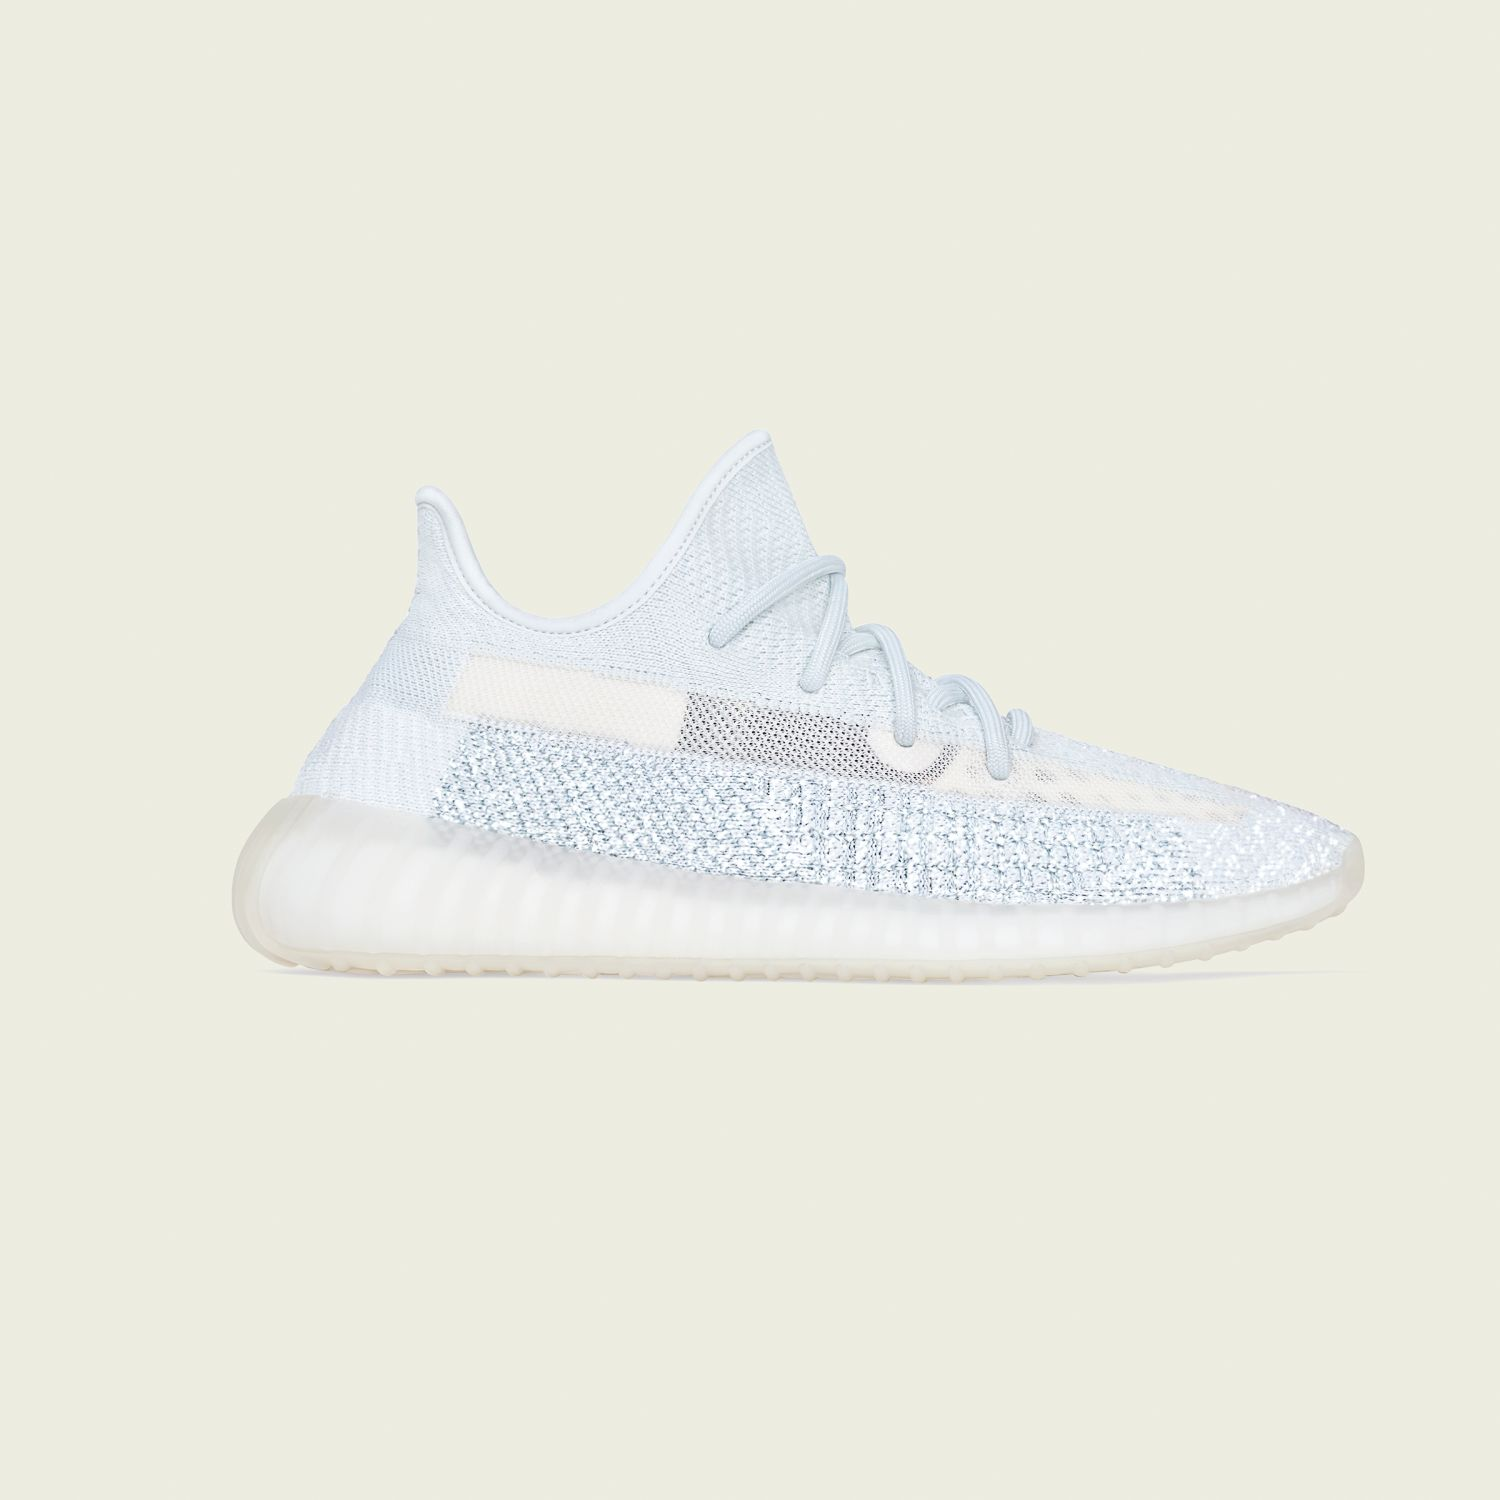 Yeezy Boost 350 V2 Cloud White (Reflective) [1]